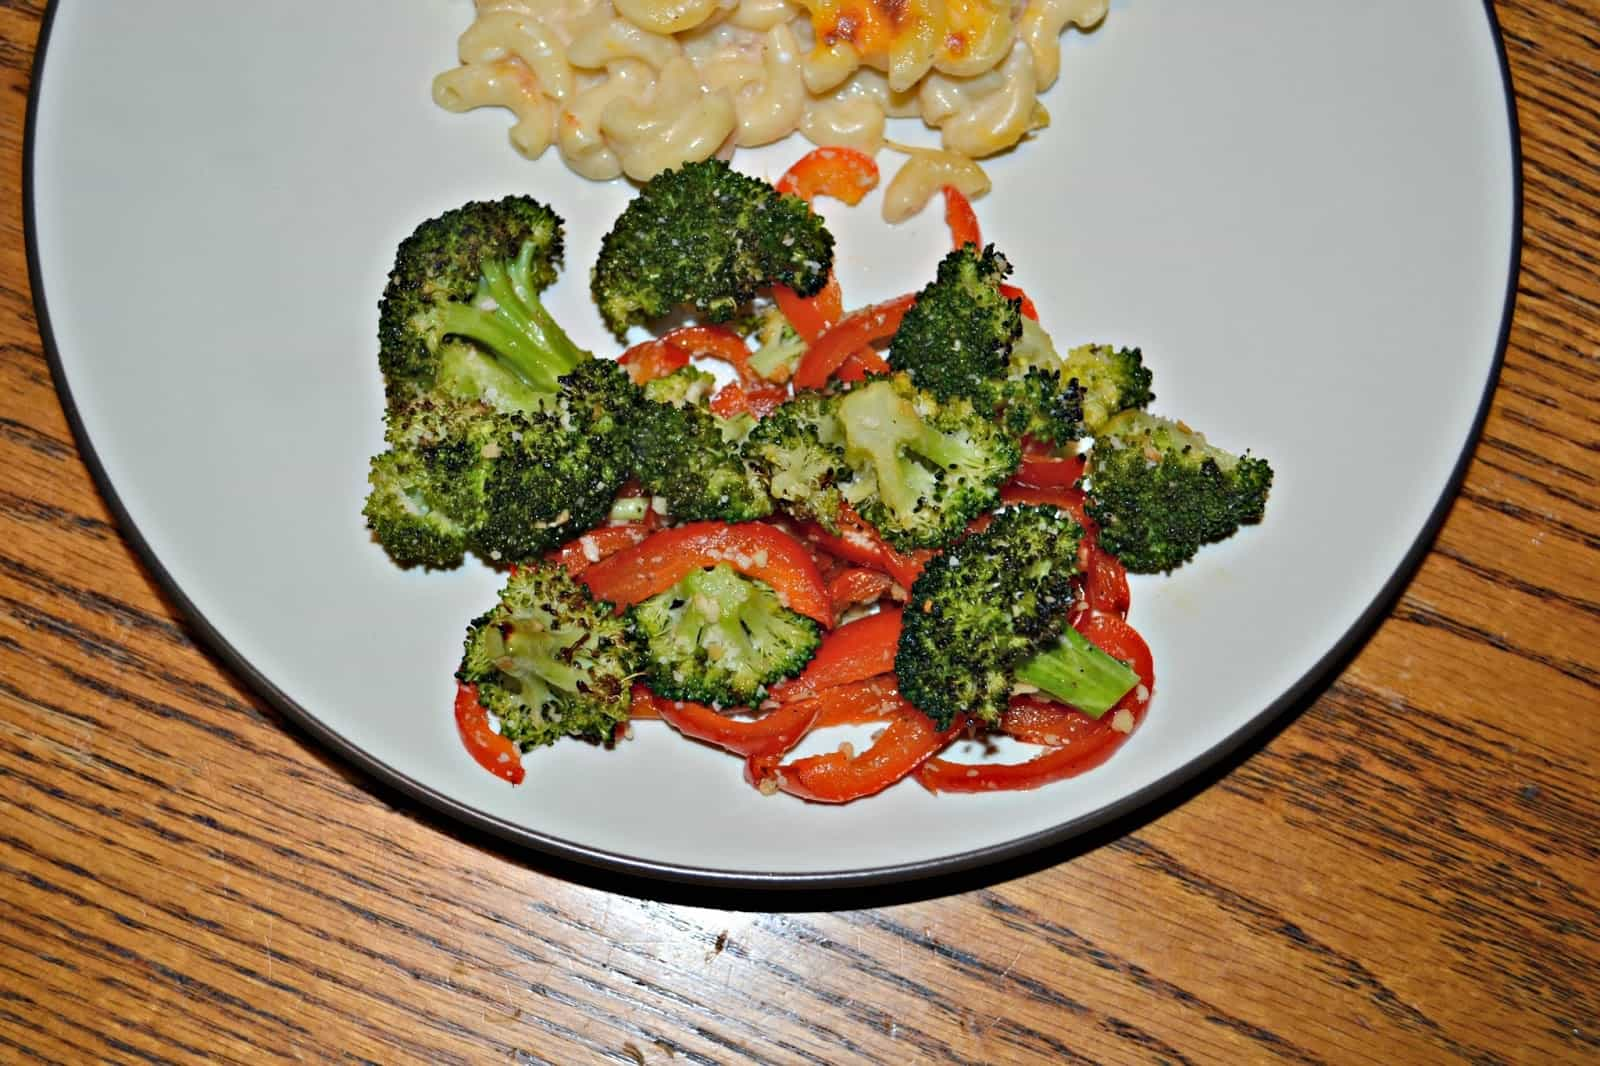 Roasted Broccoli and Red Peppers